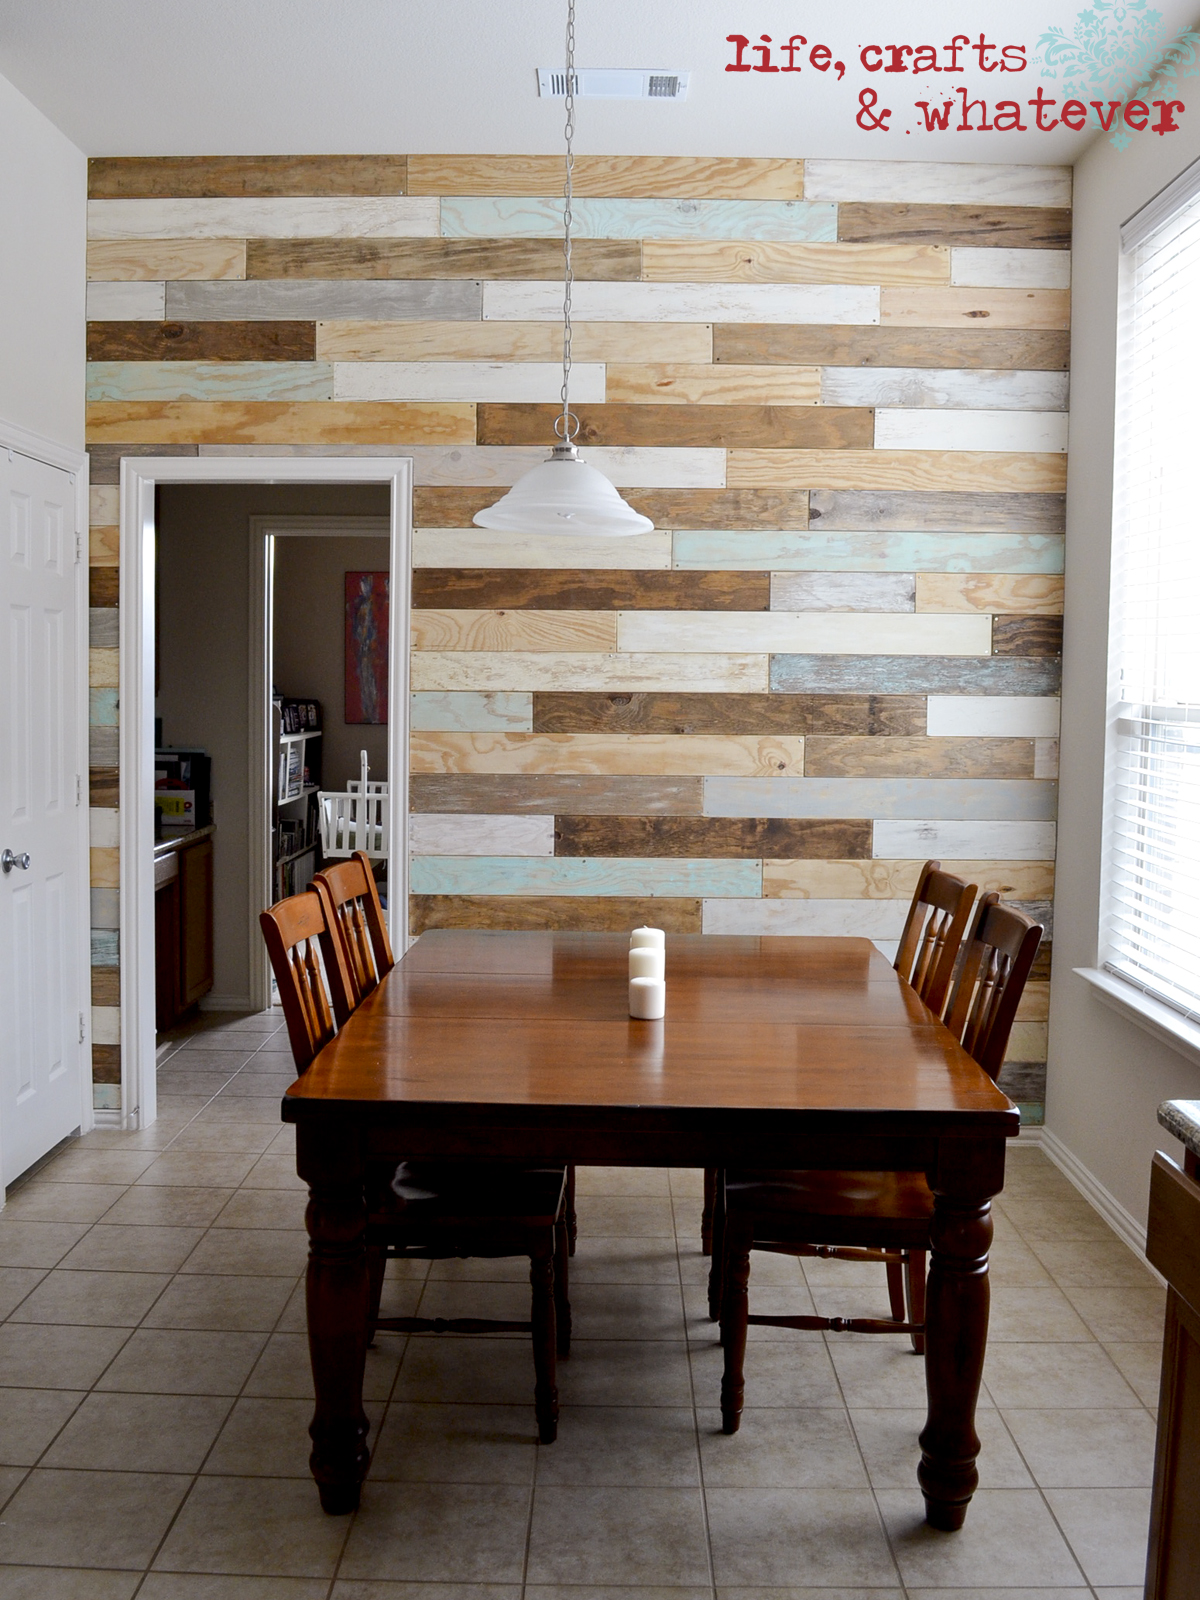 Life crafts whatever my plank wall finally - Wooden pallet accent wall ...